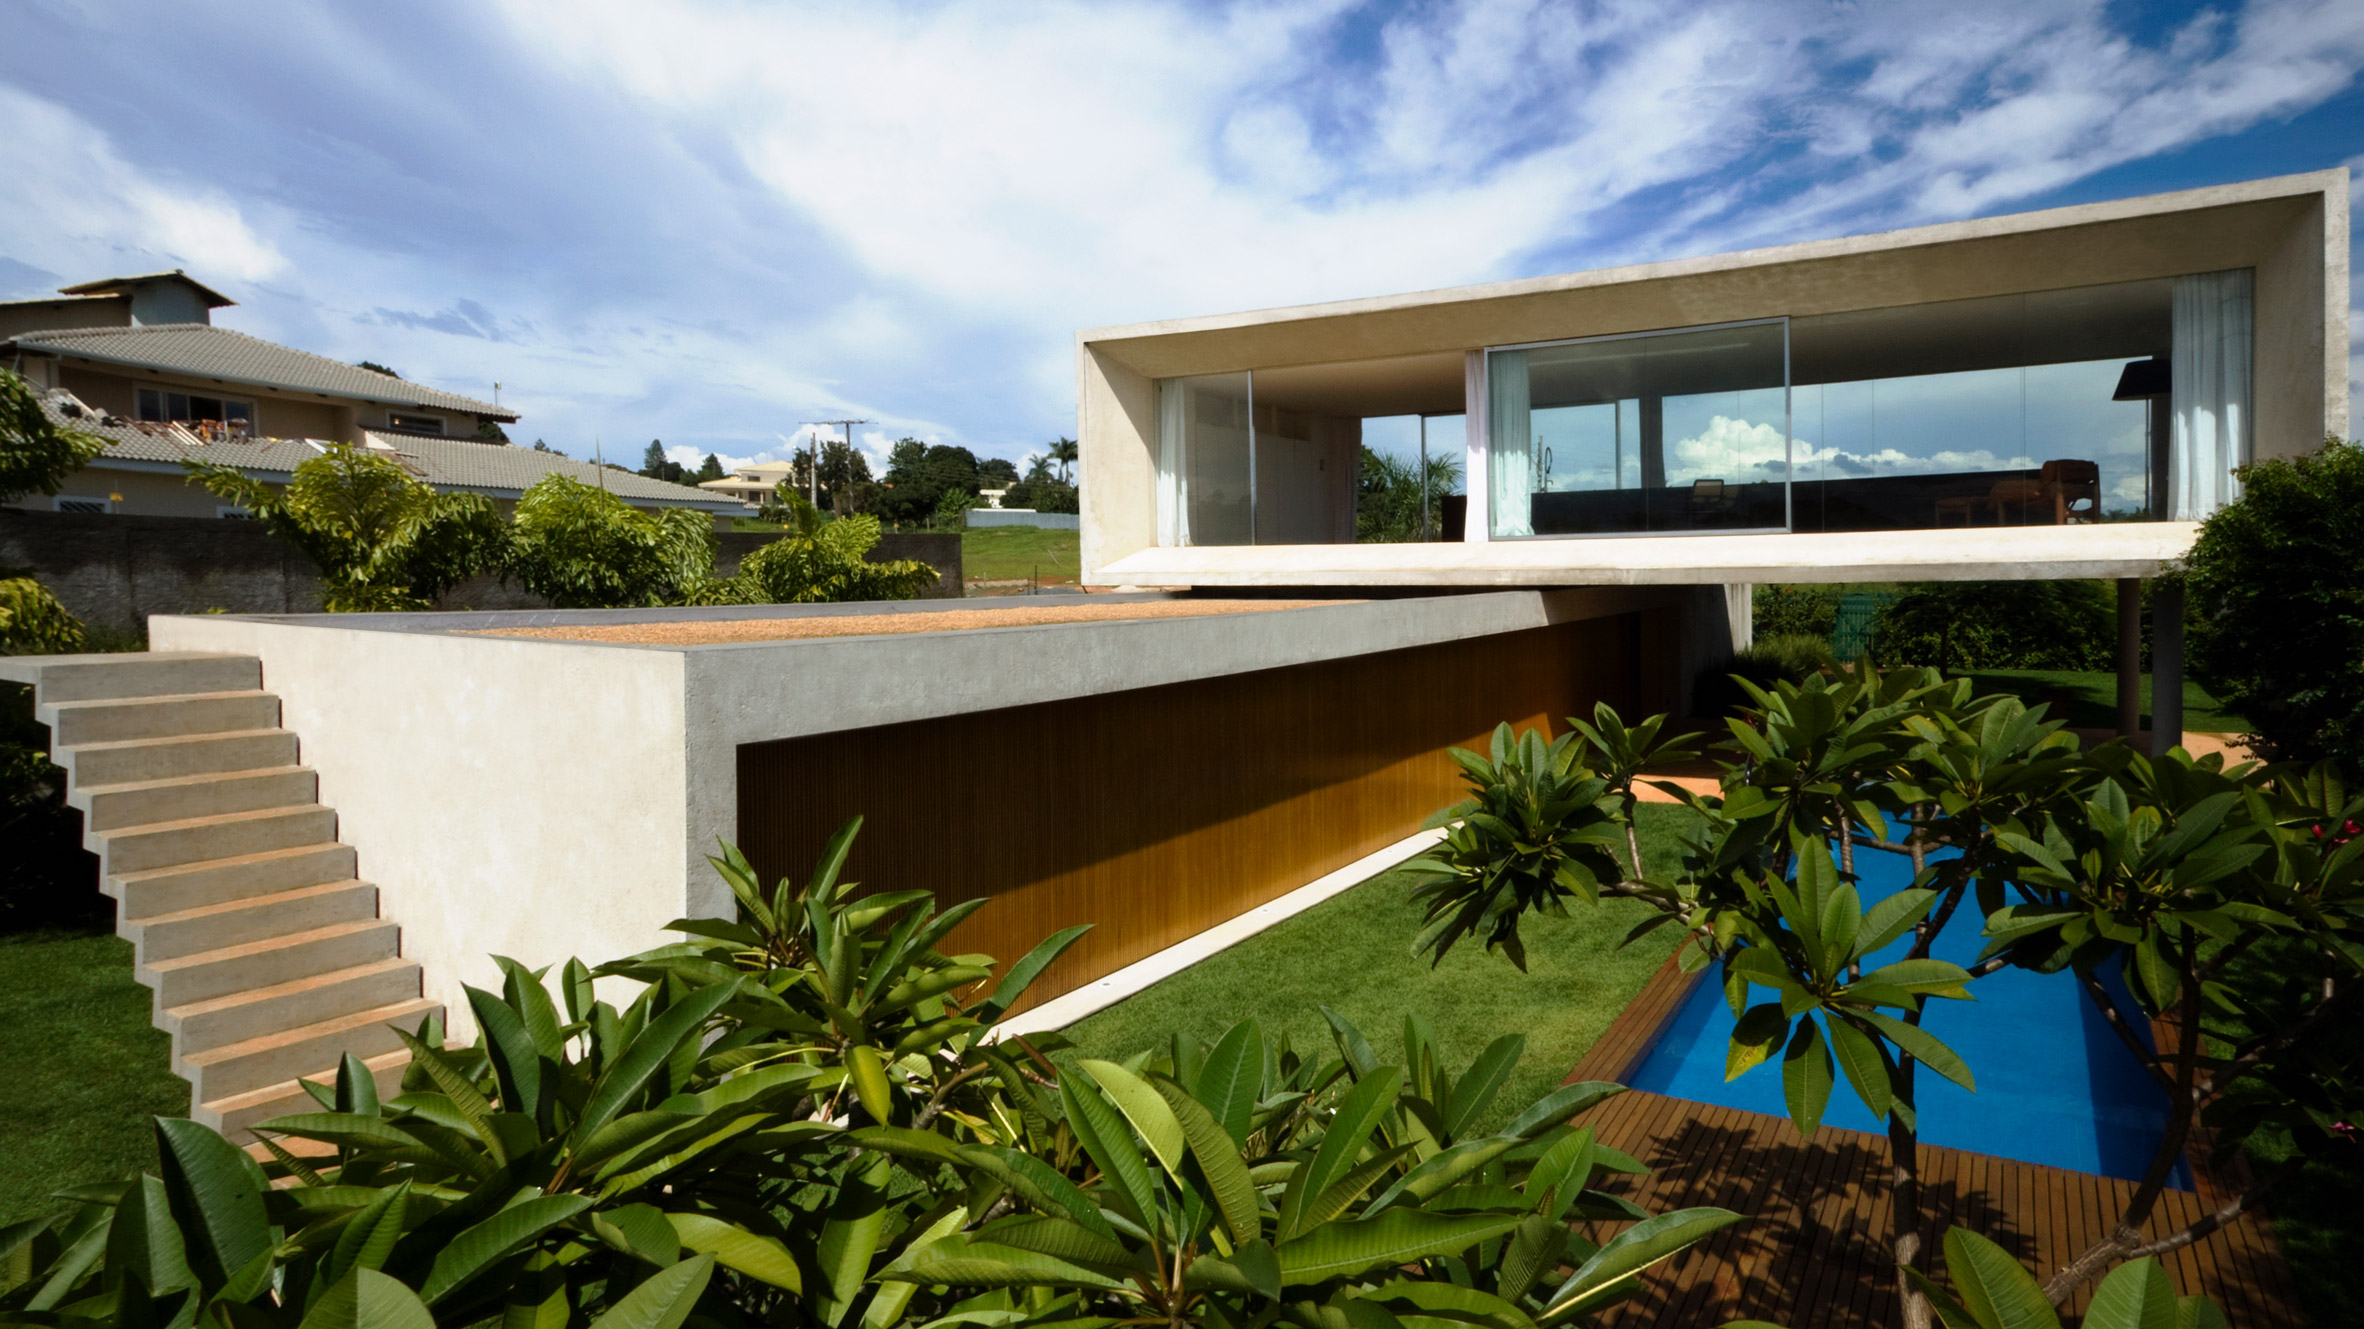 Open layout house concept by studio mk27 - Studio Mk27 Takes Cues From Brazilian Modernism For Osler House In Bras Lia